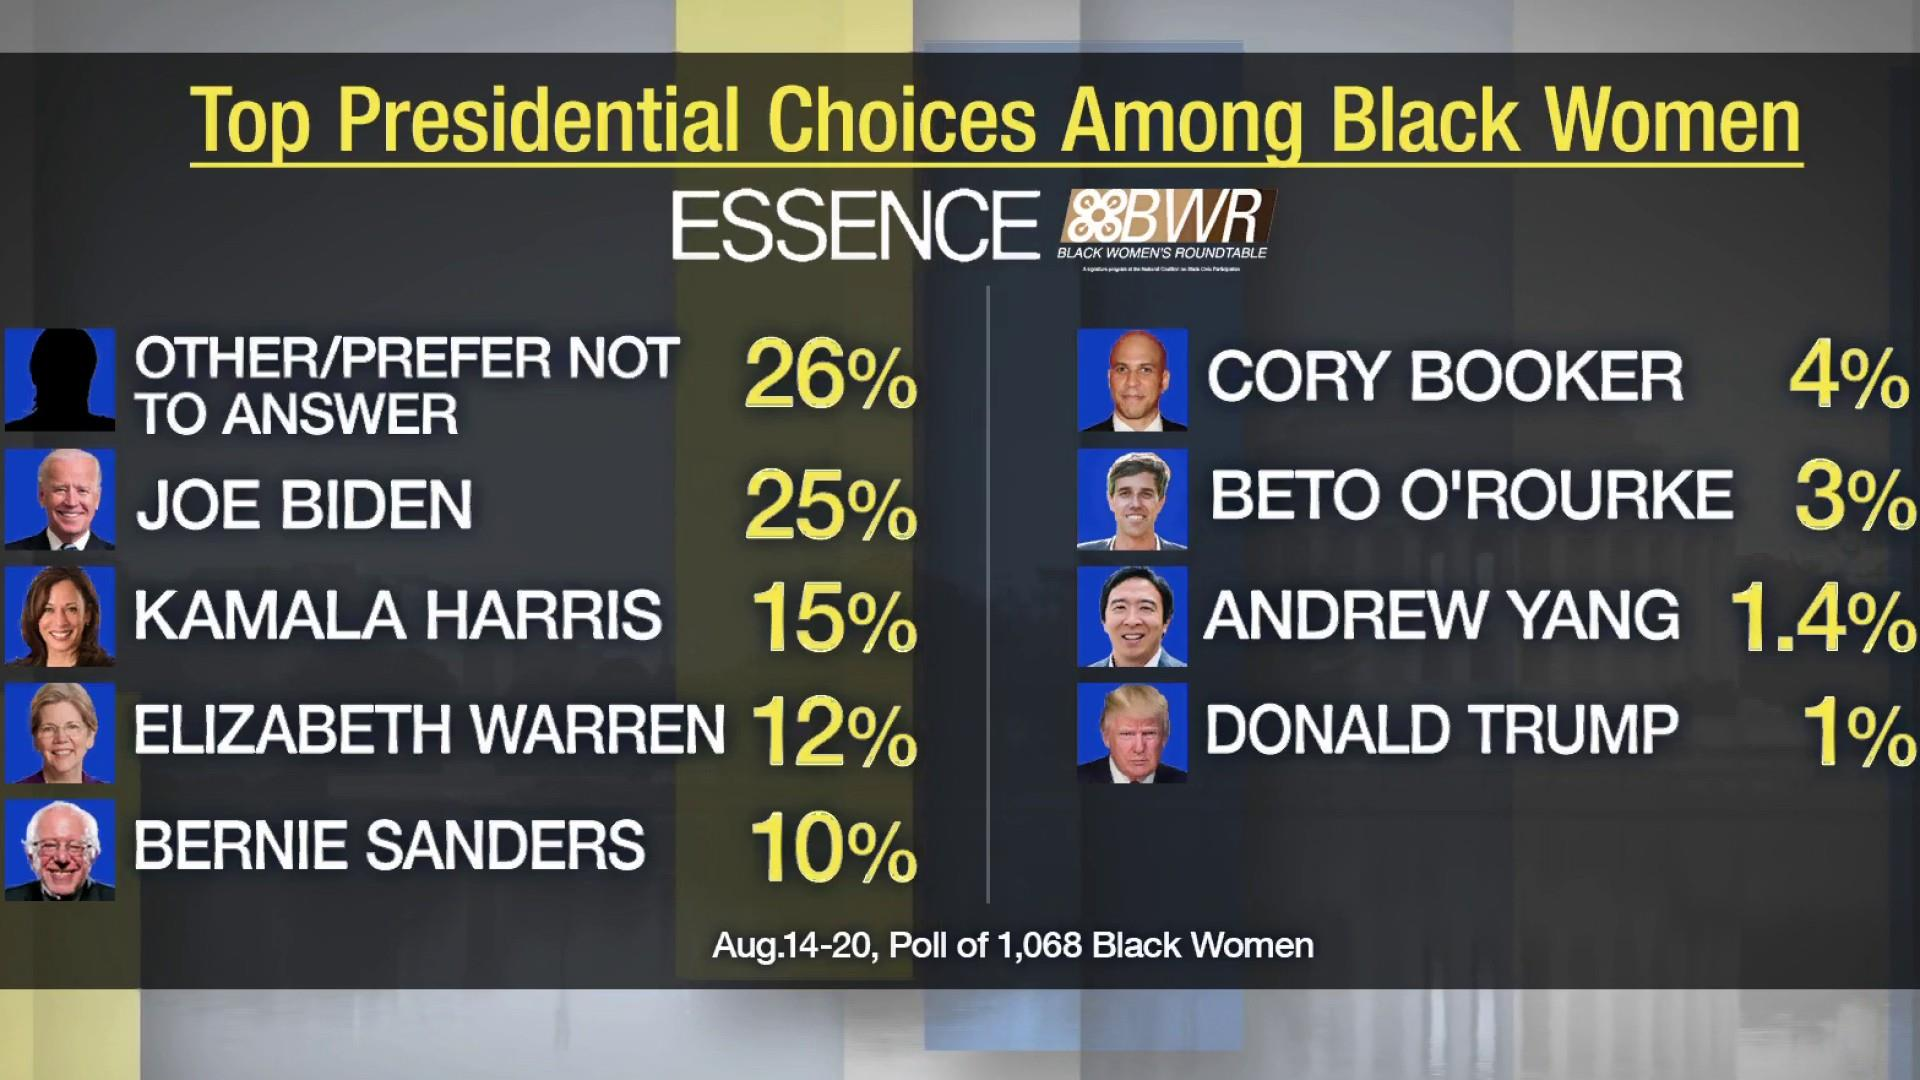 Essence/Black Women's Roundtable poll shows black women undecided